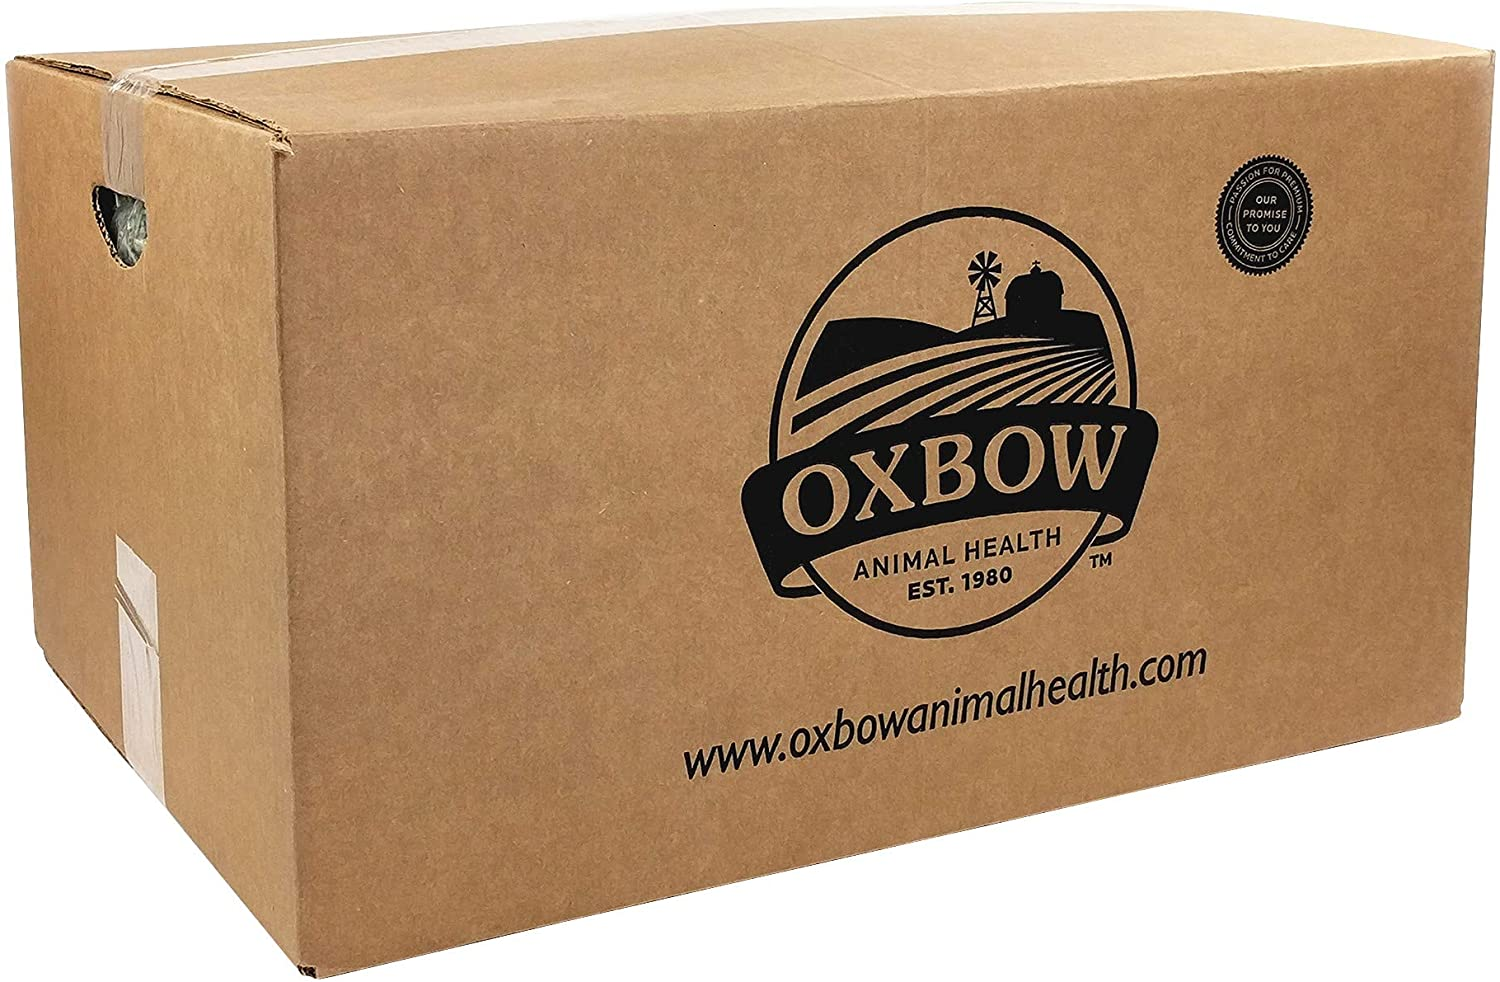 Oxbow Animal Health Western Timothy Hay - All Natural Hay for Rabbits, Guinea Pigs, Chinchillas, Hamsters & Gerbils Bulk Size